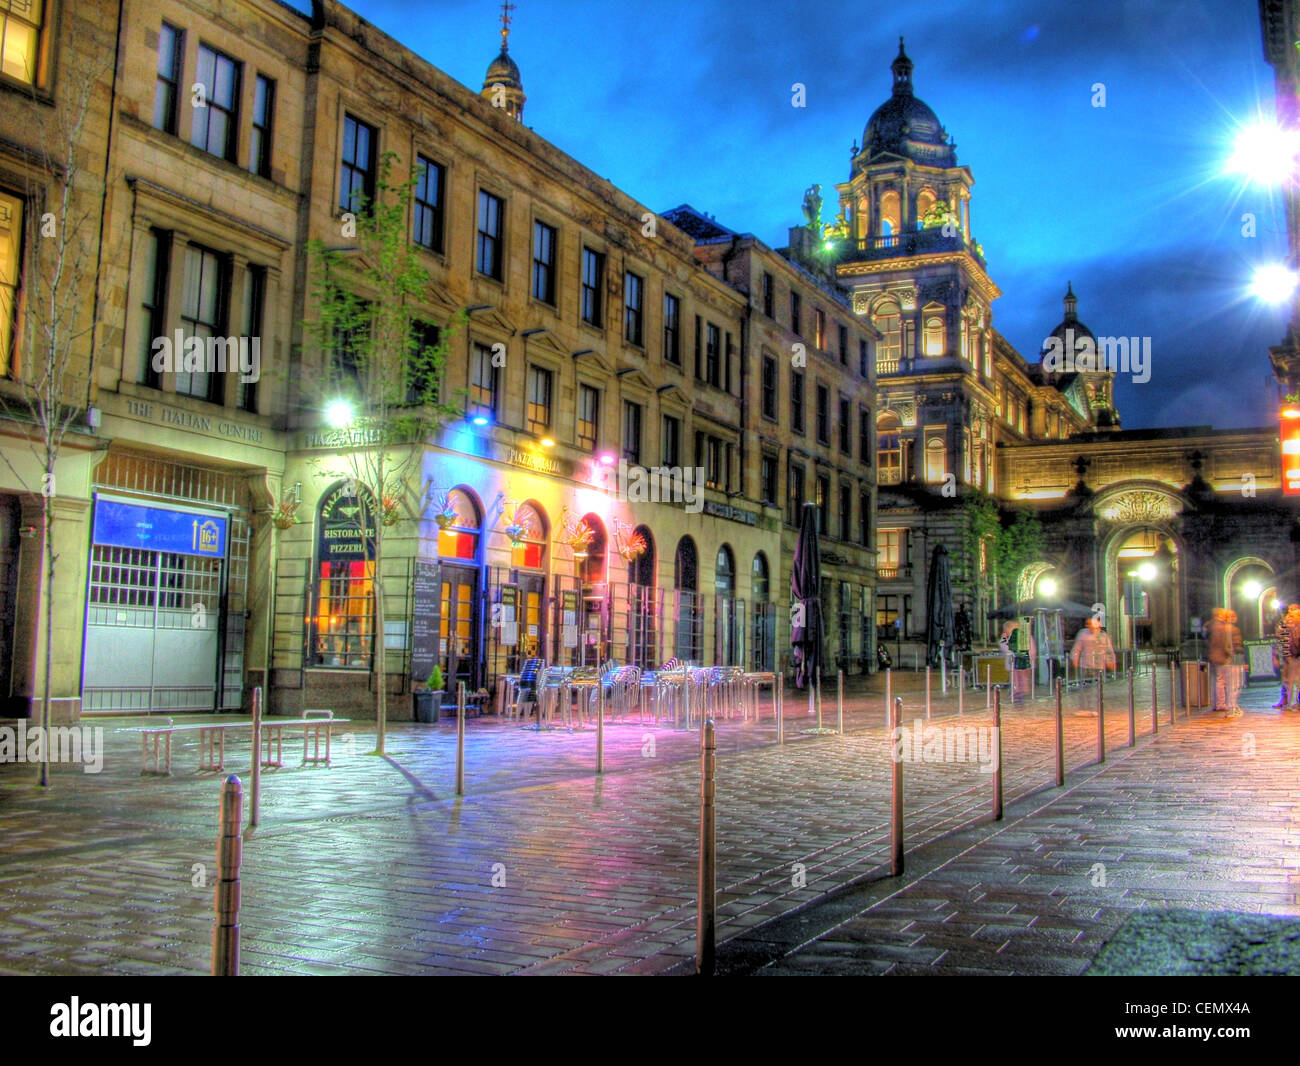 Glasgow by night John St, Merchant City Chambers, Scotland (Strathclyde UK) at dusk with a blue sky. @Hotpixuk Stock Photo